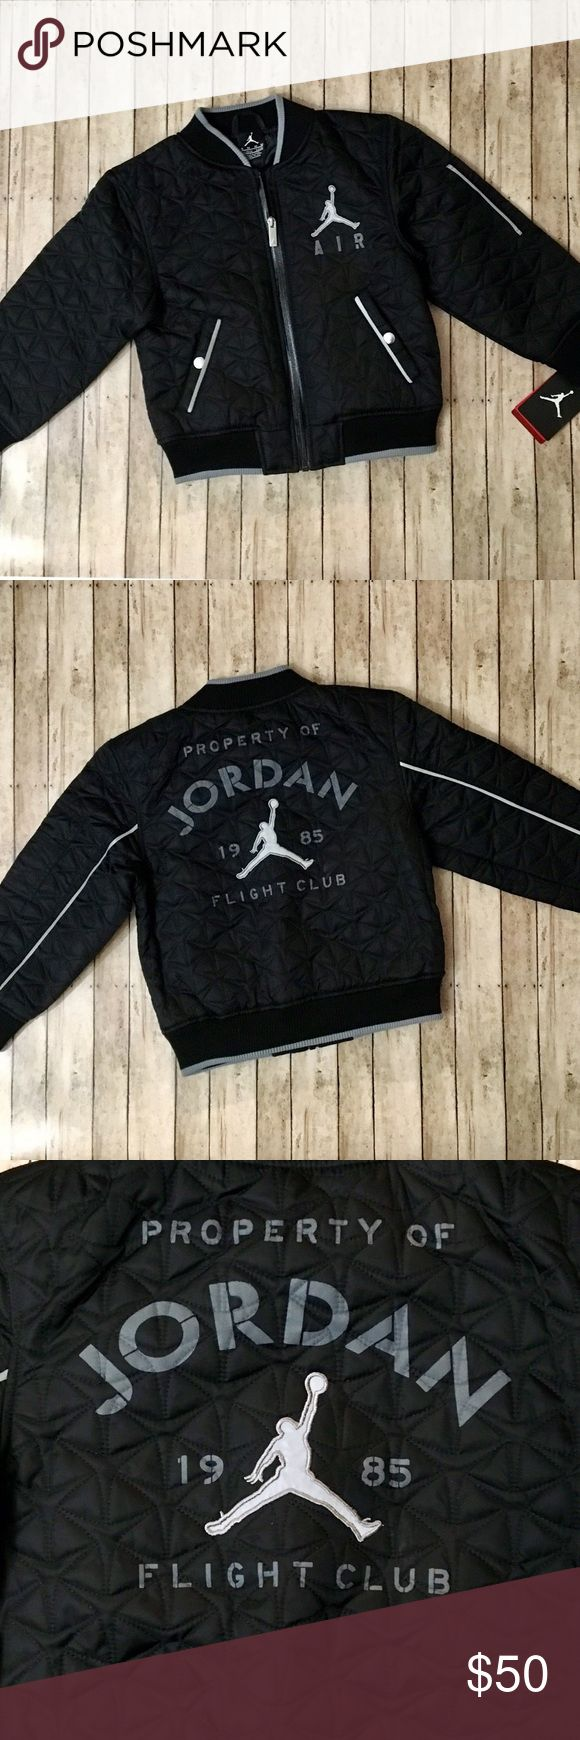 "NWT Nike Air Jordan Flight Club Bomber Jacket - NWT - Size 6 - Nike Air Jordan - Quilt-like design - Pockets on both sides in front - Black - Tag says fit is for 110-116cm, 5-6 years, 6 M - Shell: 100% nylon, Lining: 100% polyester - Length measures approx. 18"" - Nike Jackets & Coats"